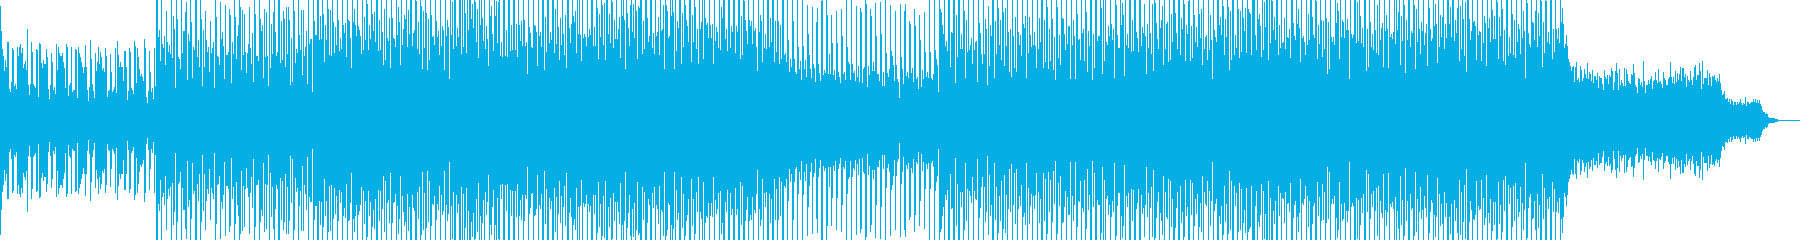 EDM club dance music-18's reproduced waveform